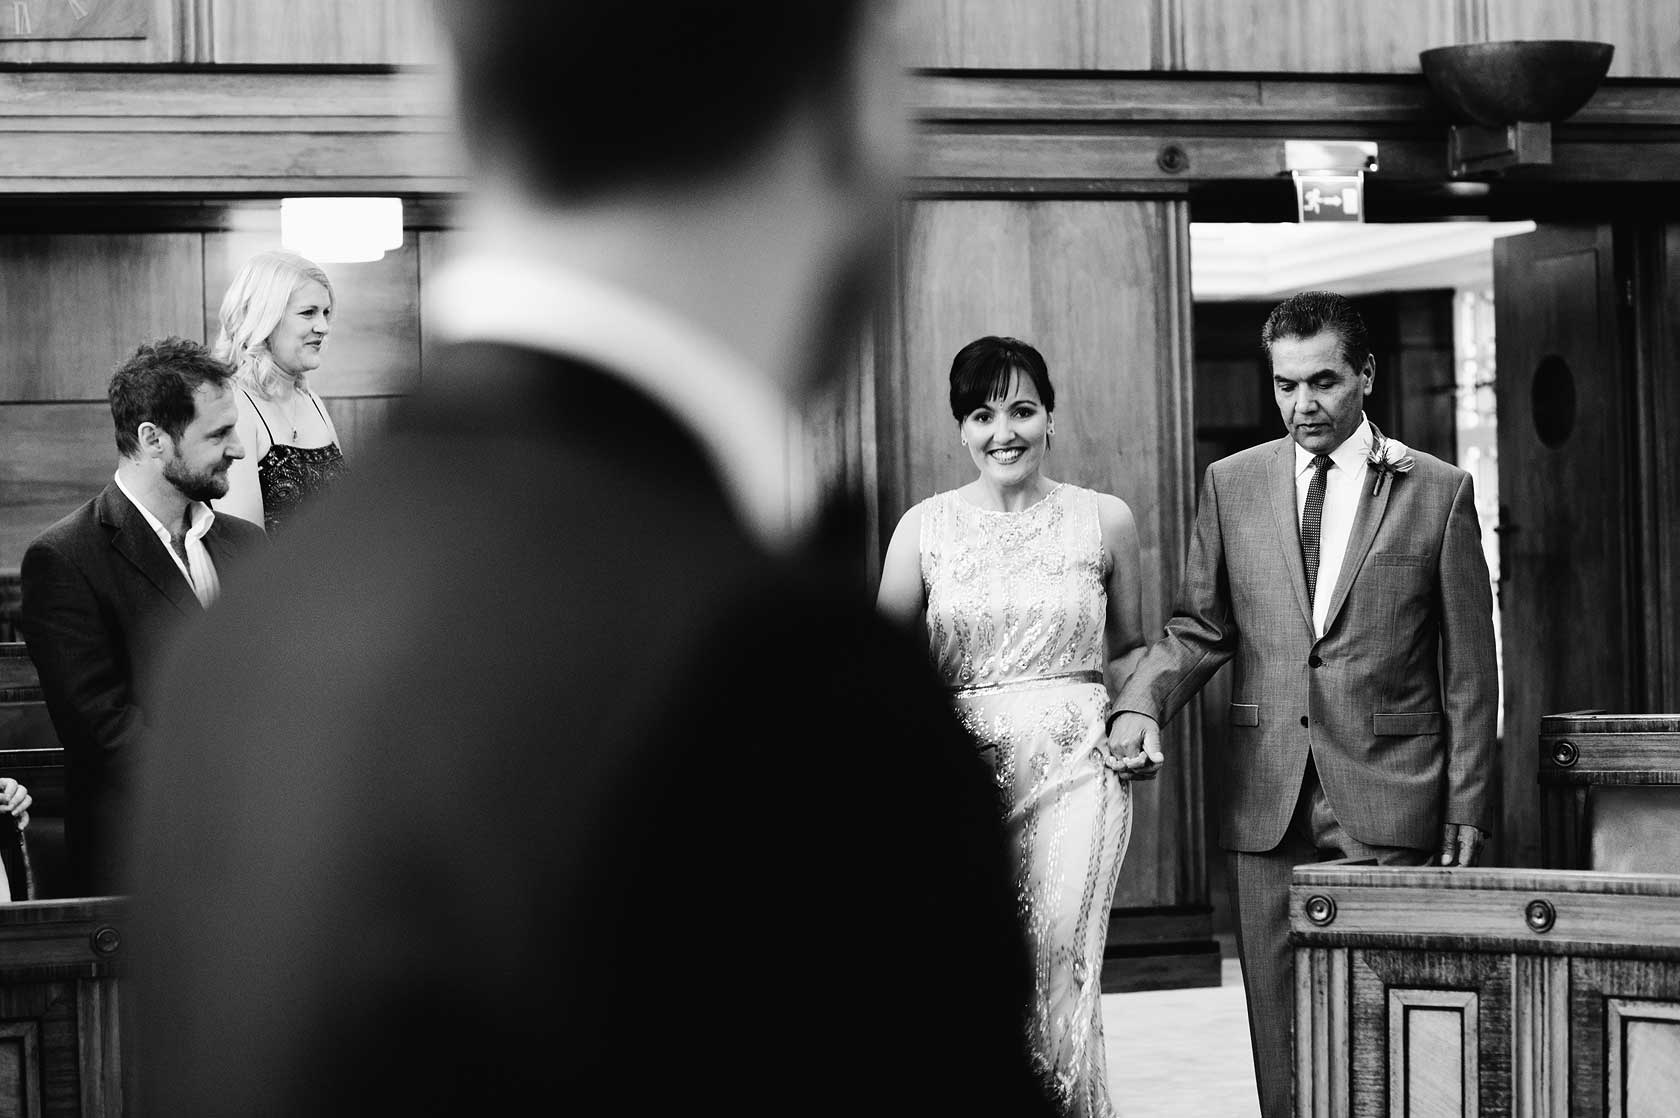 Reportage Wedding Photography at Shoreditch House